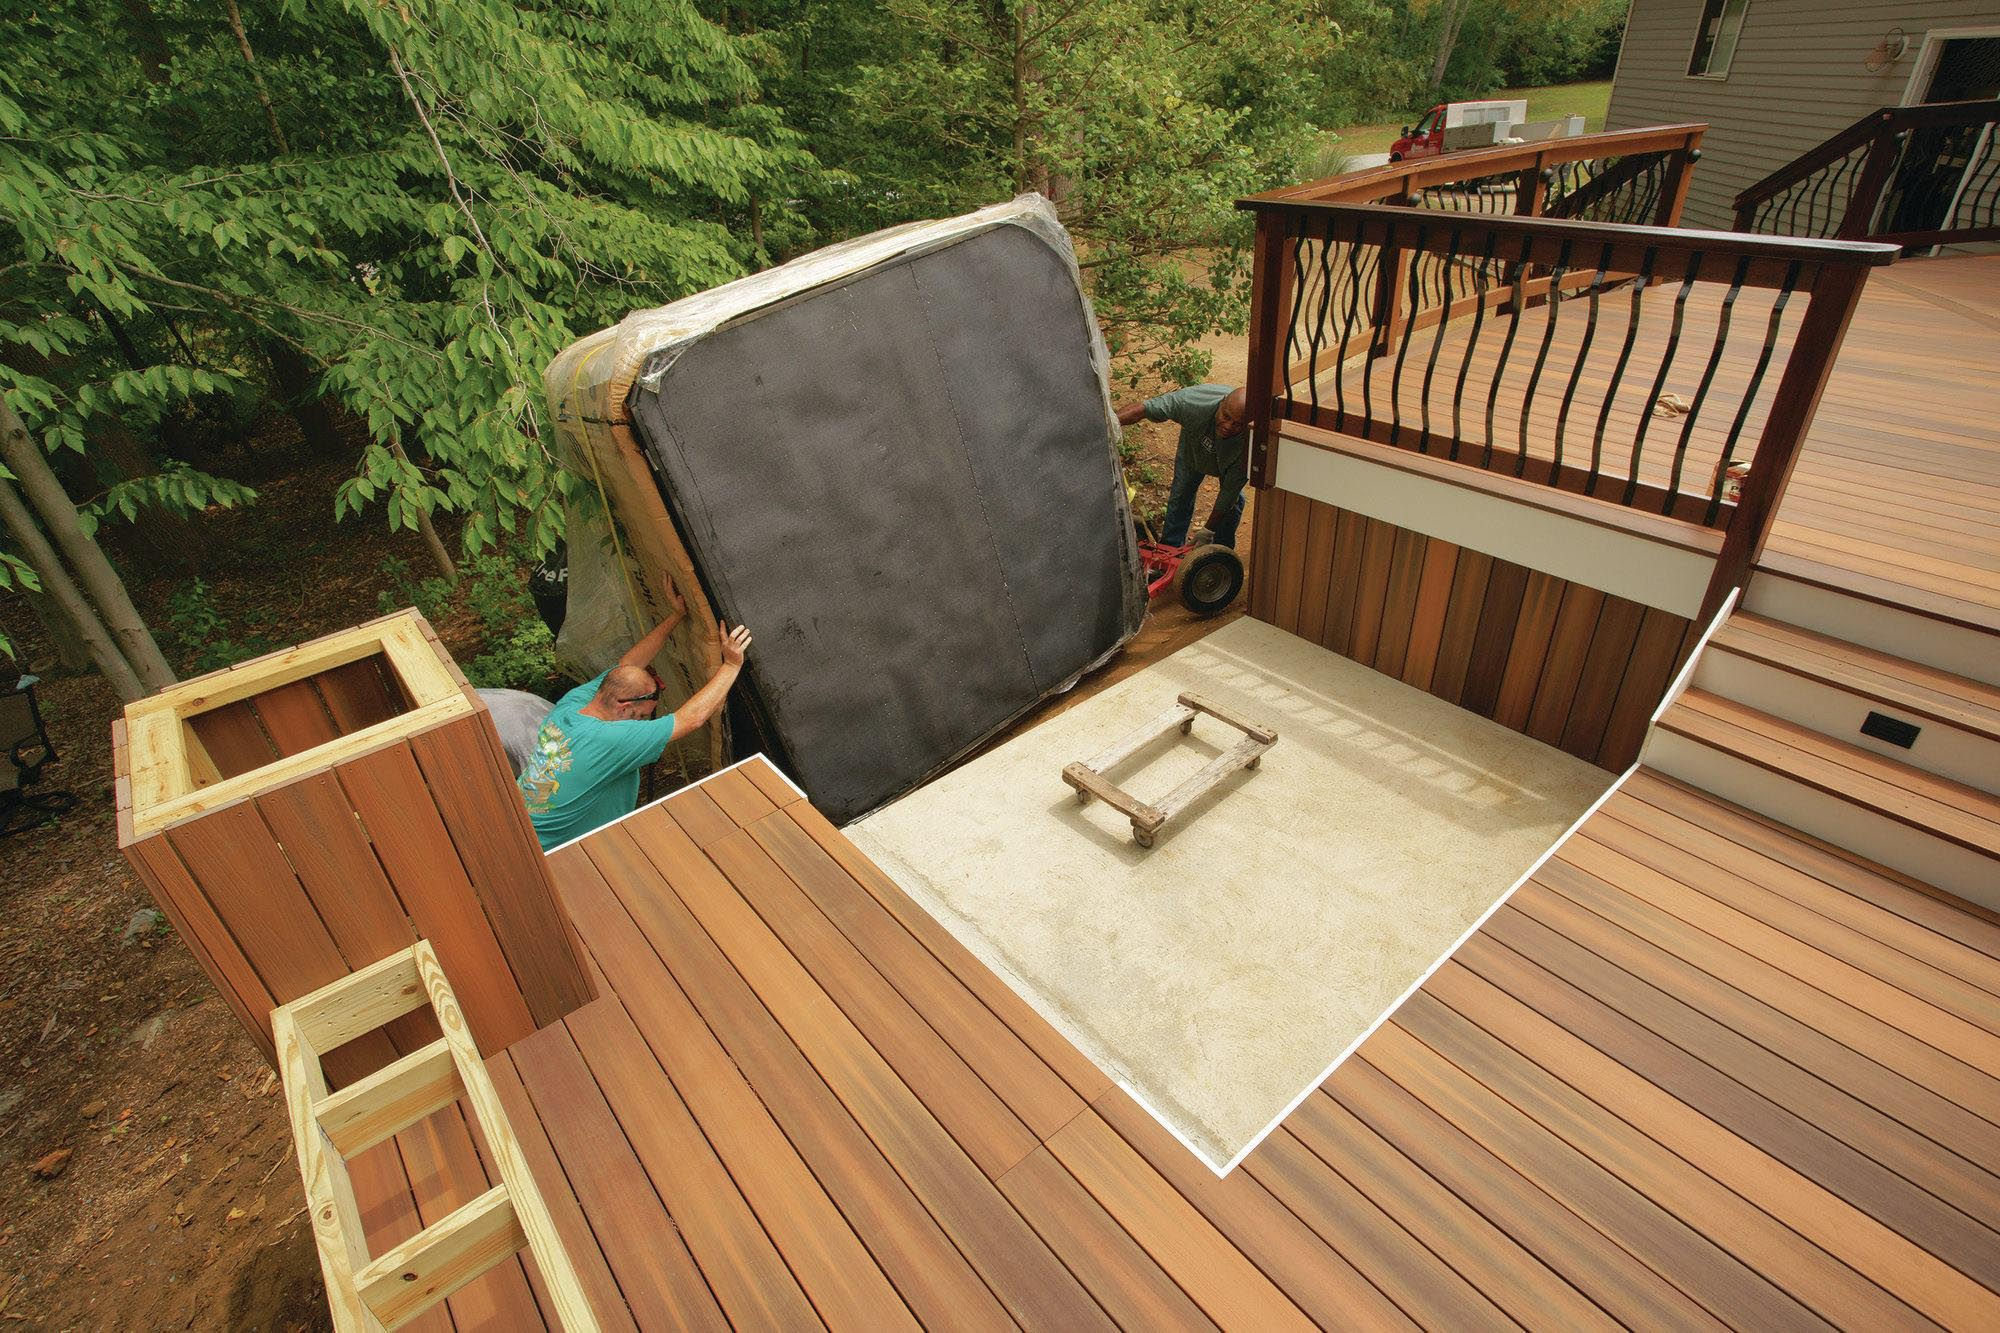 Pros of building a hot tub deck backyard design ideas for Above ground pool decks with hot tub